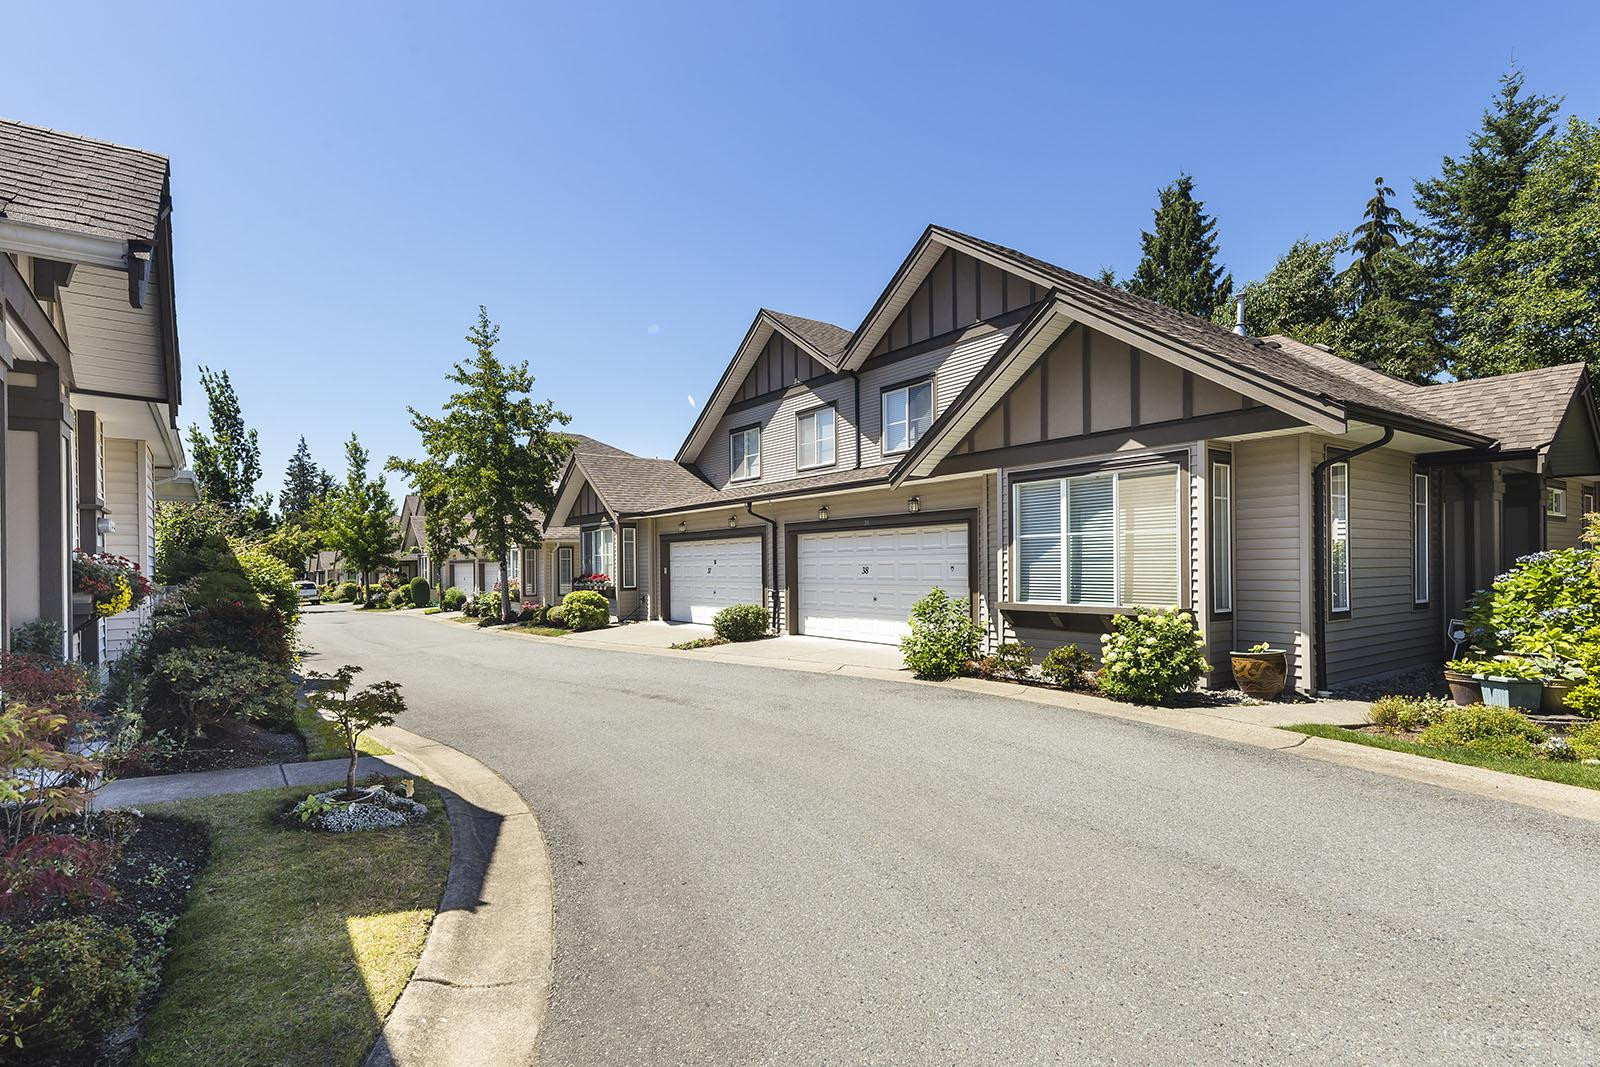 Chestnut Grove at 15868 85 Ave, Surrey 1